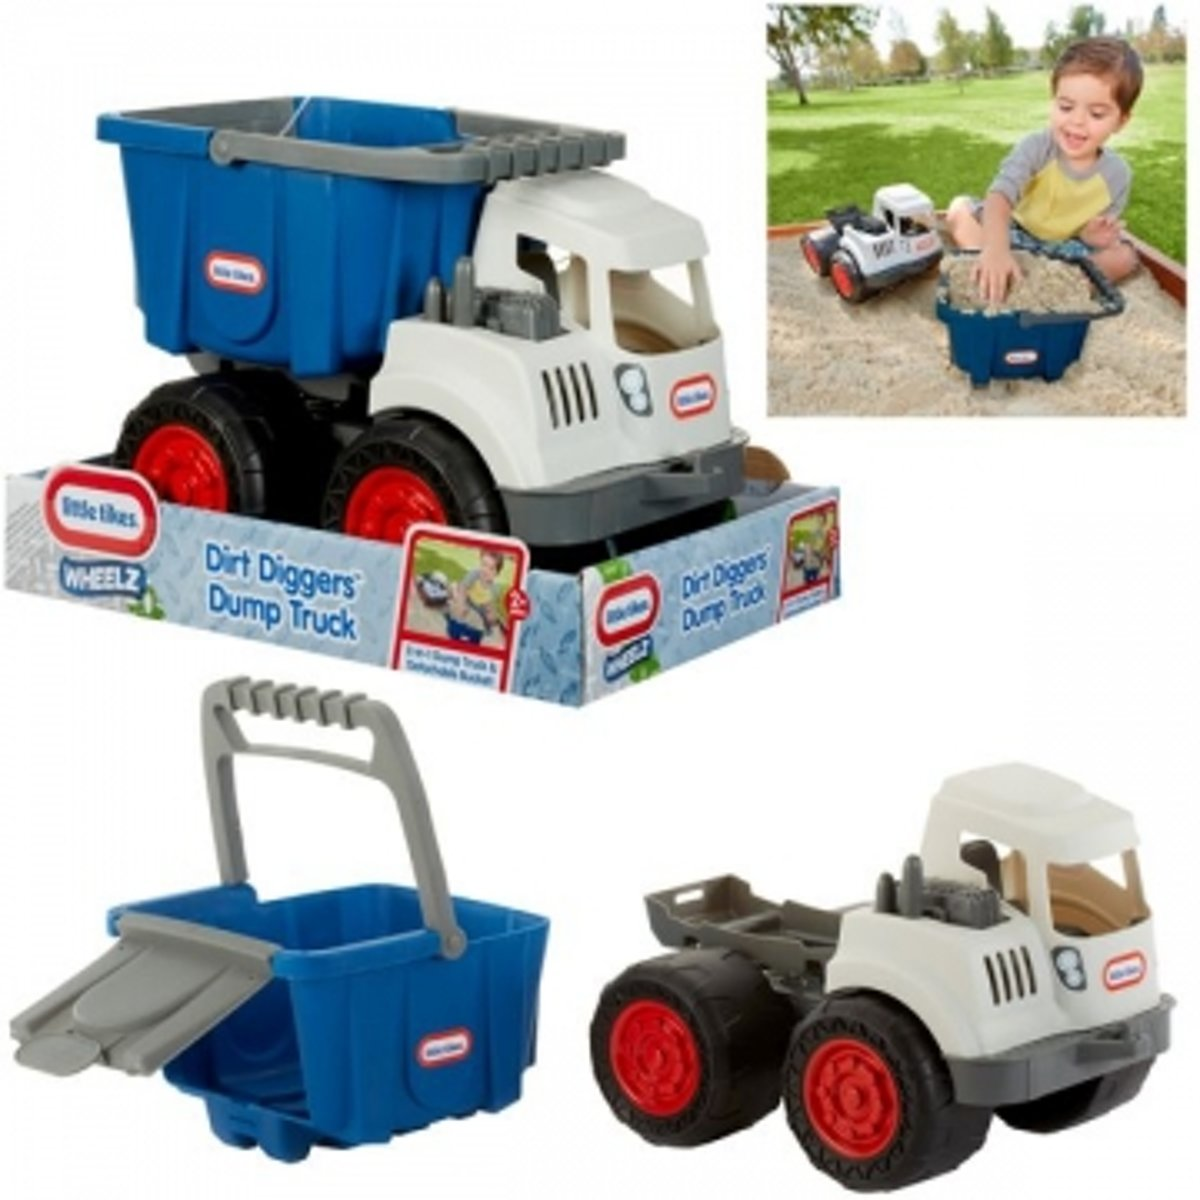 Dirt Diggers? 2-in-1 Dump Truck